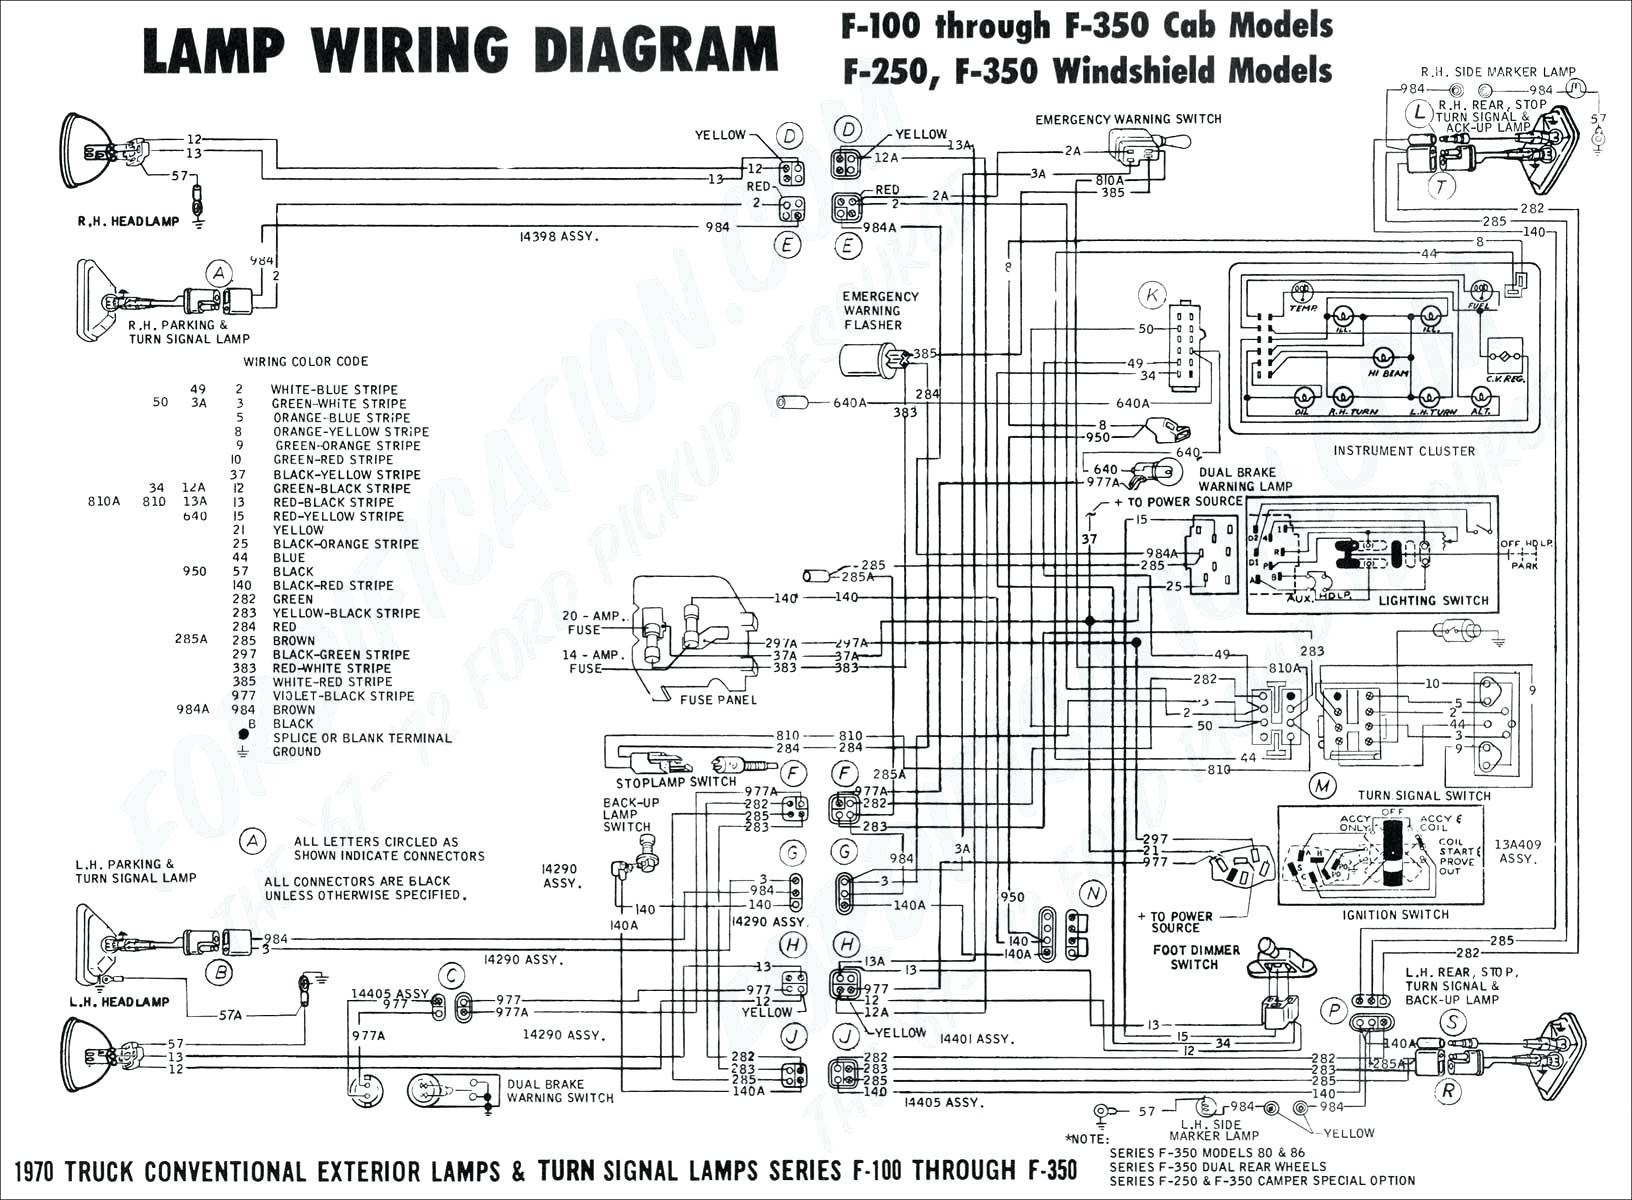 ford f150 engine wiring harness diagram Download-Wiring Diagram ford F150 Trailer Lights Truck Best ford Engine Diagrams 1997 Ranger Diagram Wiring Harness 13-n